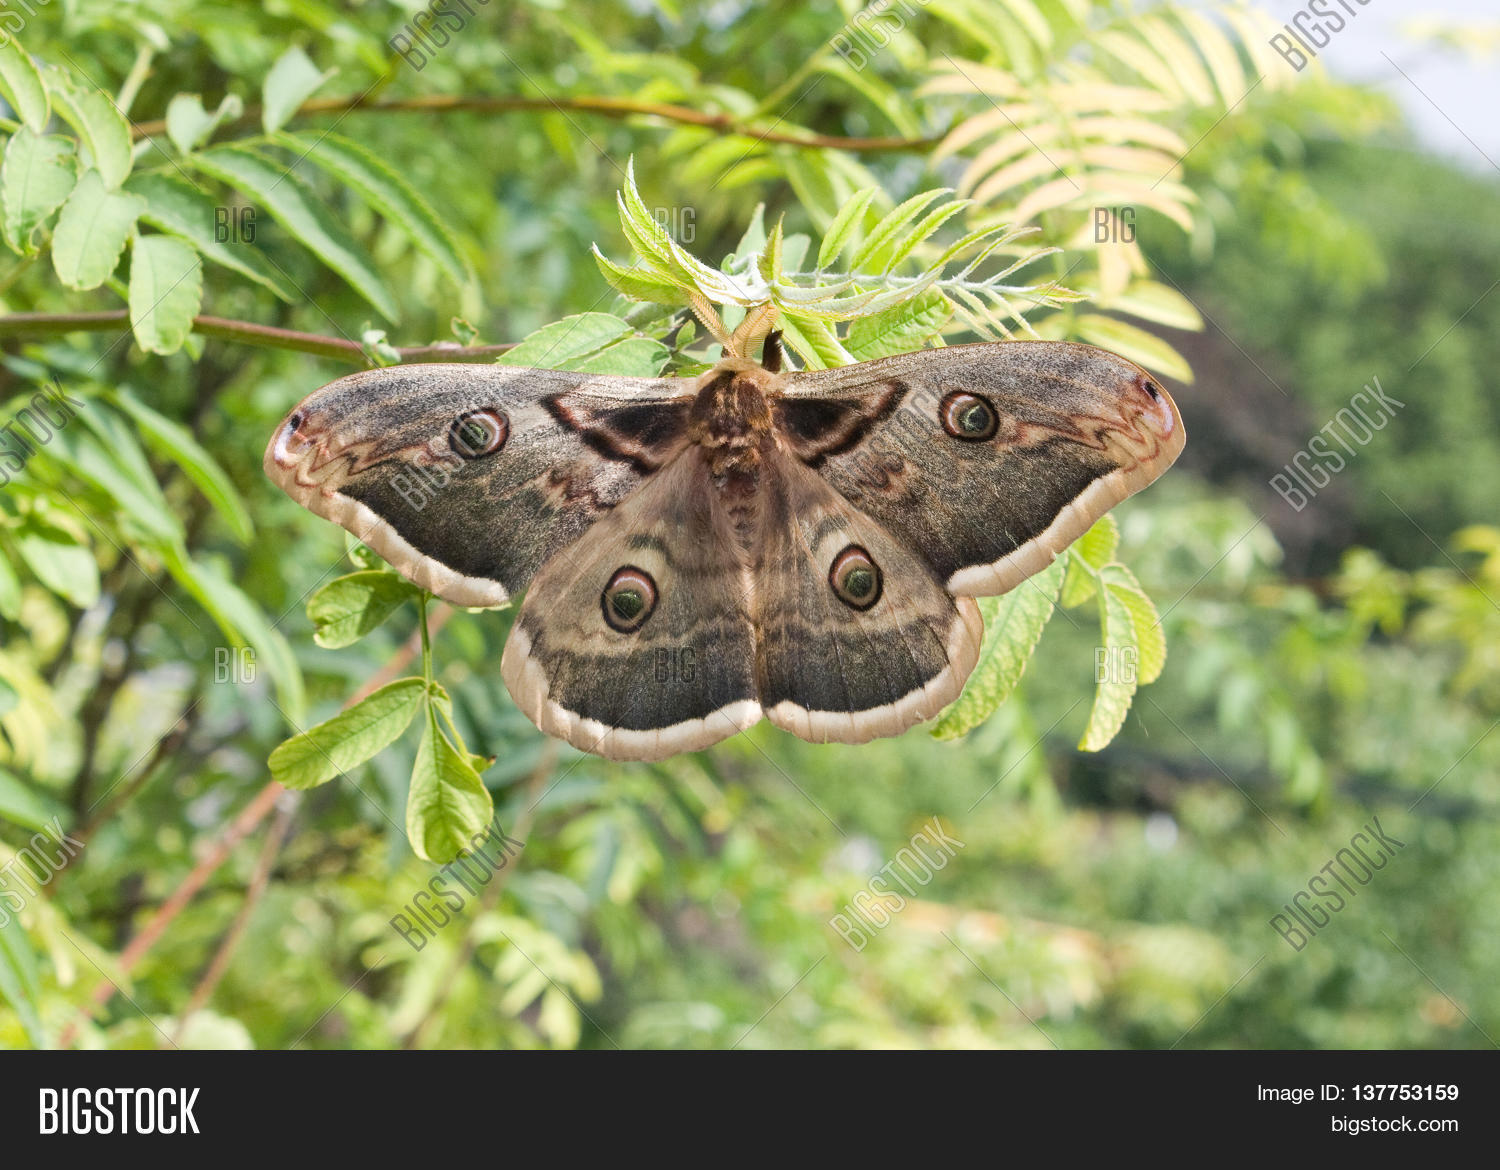 abstract,animal,antenna,antennae,ashberry,beautiful,biology,bright,bug,butterfly,closeup,colorful,delicate,detail,elegance,environment,exotic,fragility,garden,grace,green,insect,large,macro,moth,natural,outdoors,pattern,plant,pretty,resting,saturnia,pyri,single,sitting,spring,summer,symmetry,tree,vibrant,white,wildlife,yellow